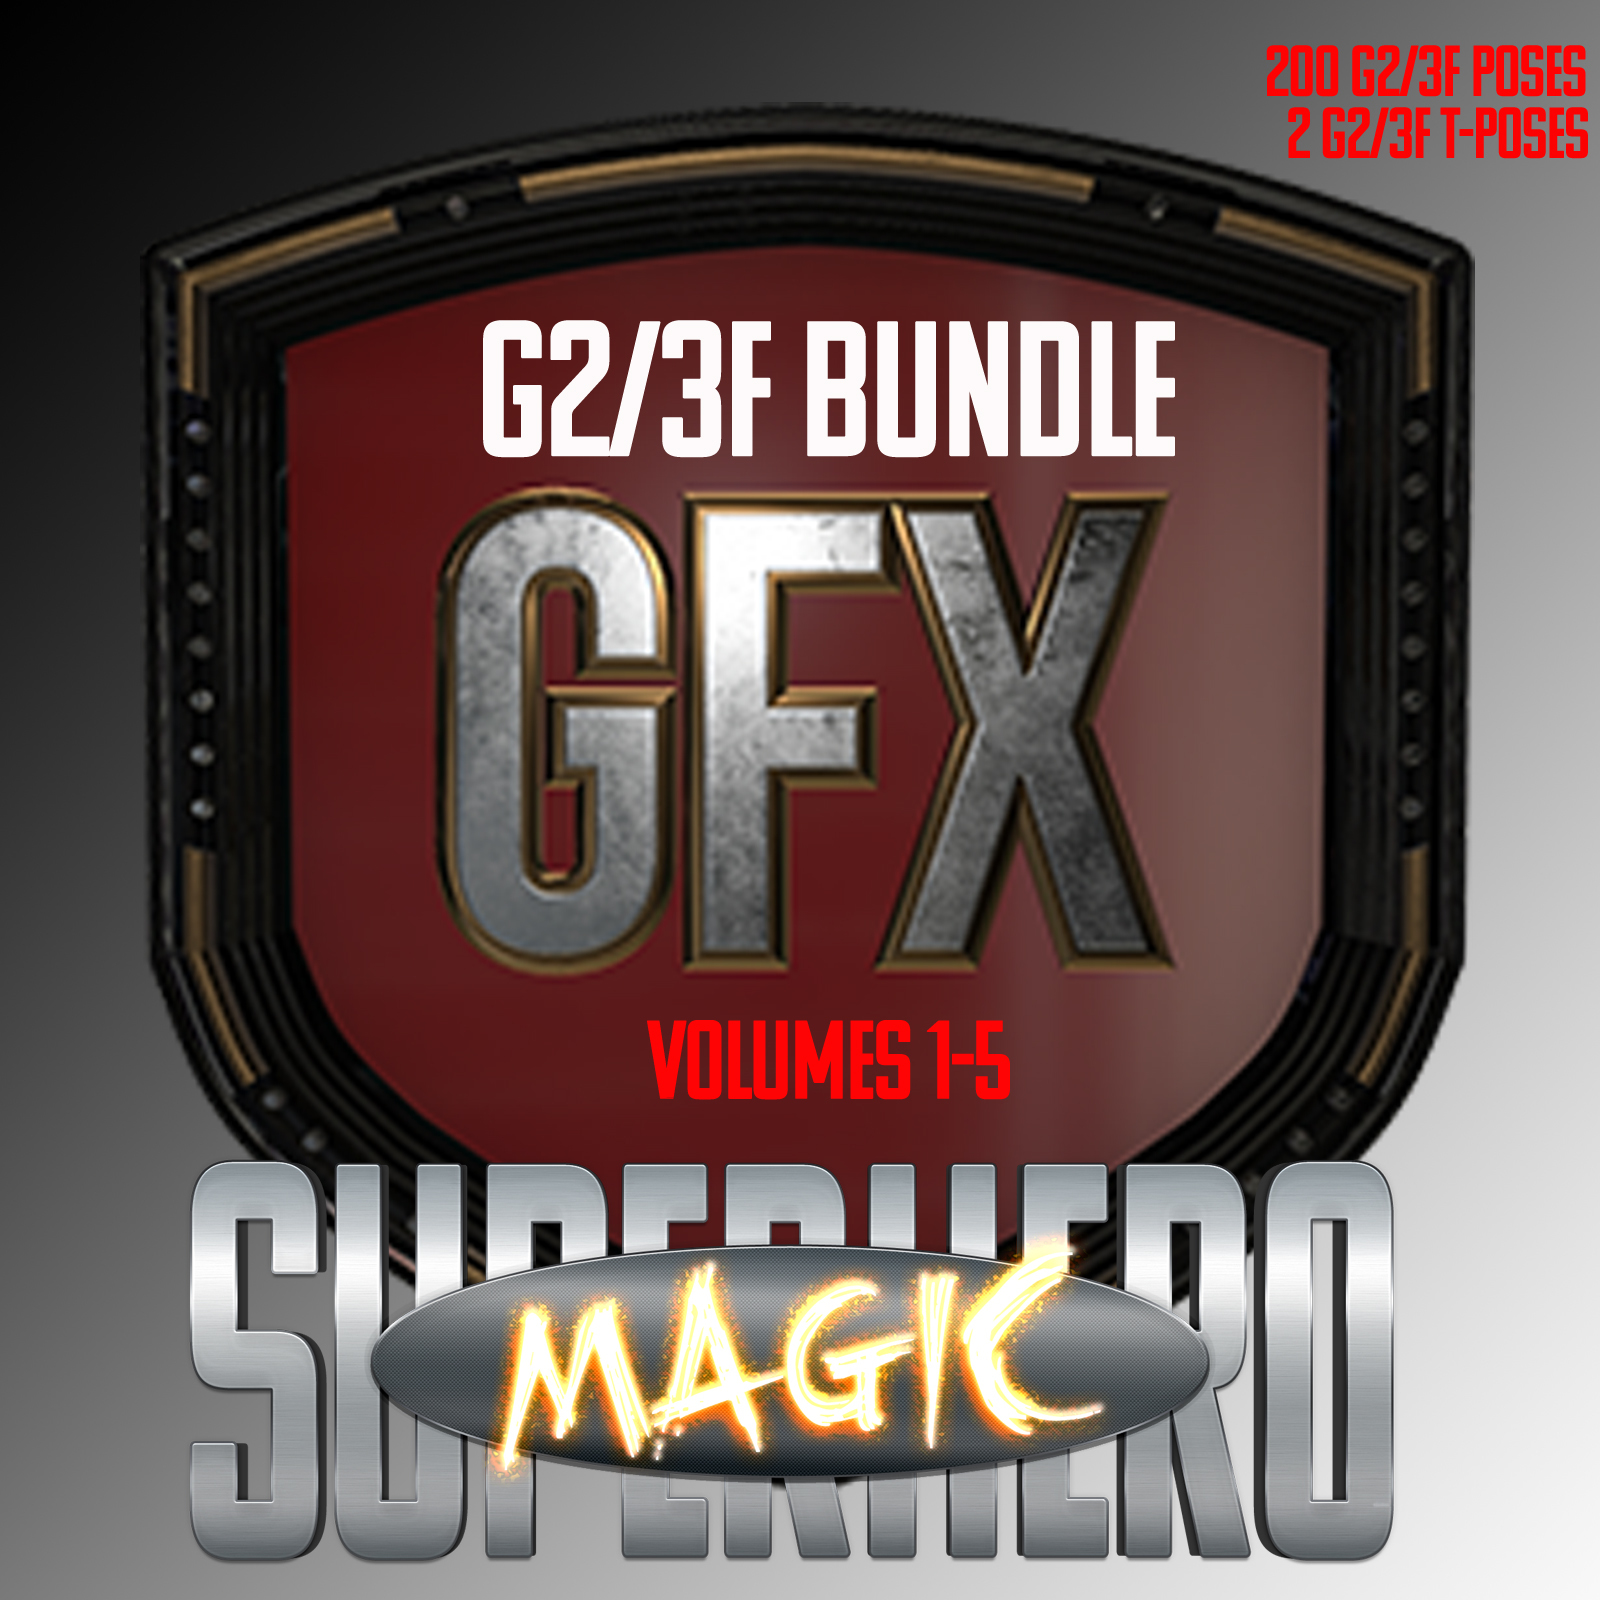 SuperHero Magic Bundle for G2F and G3F